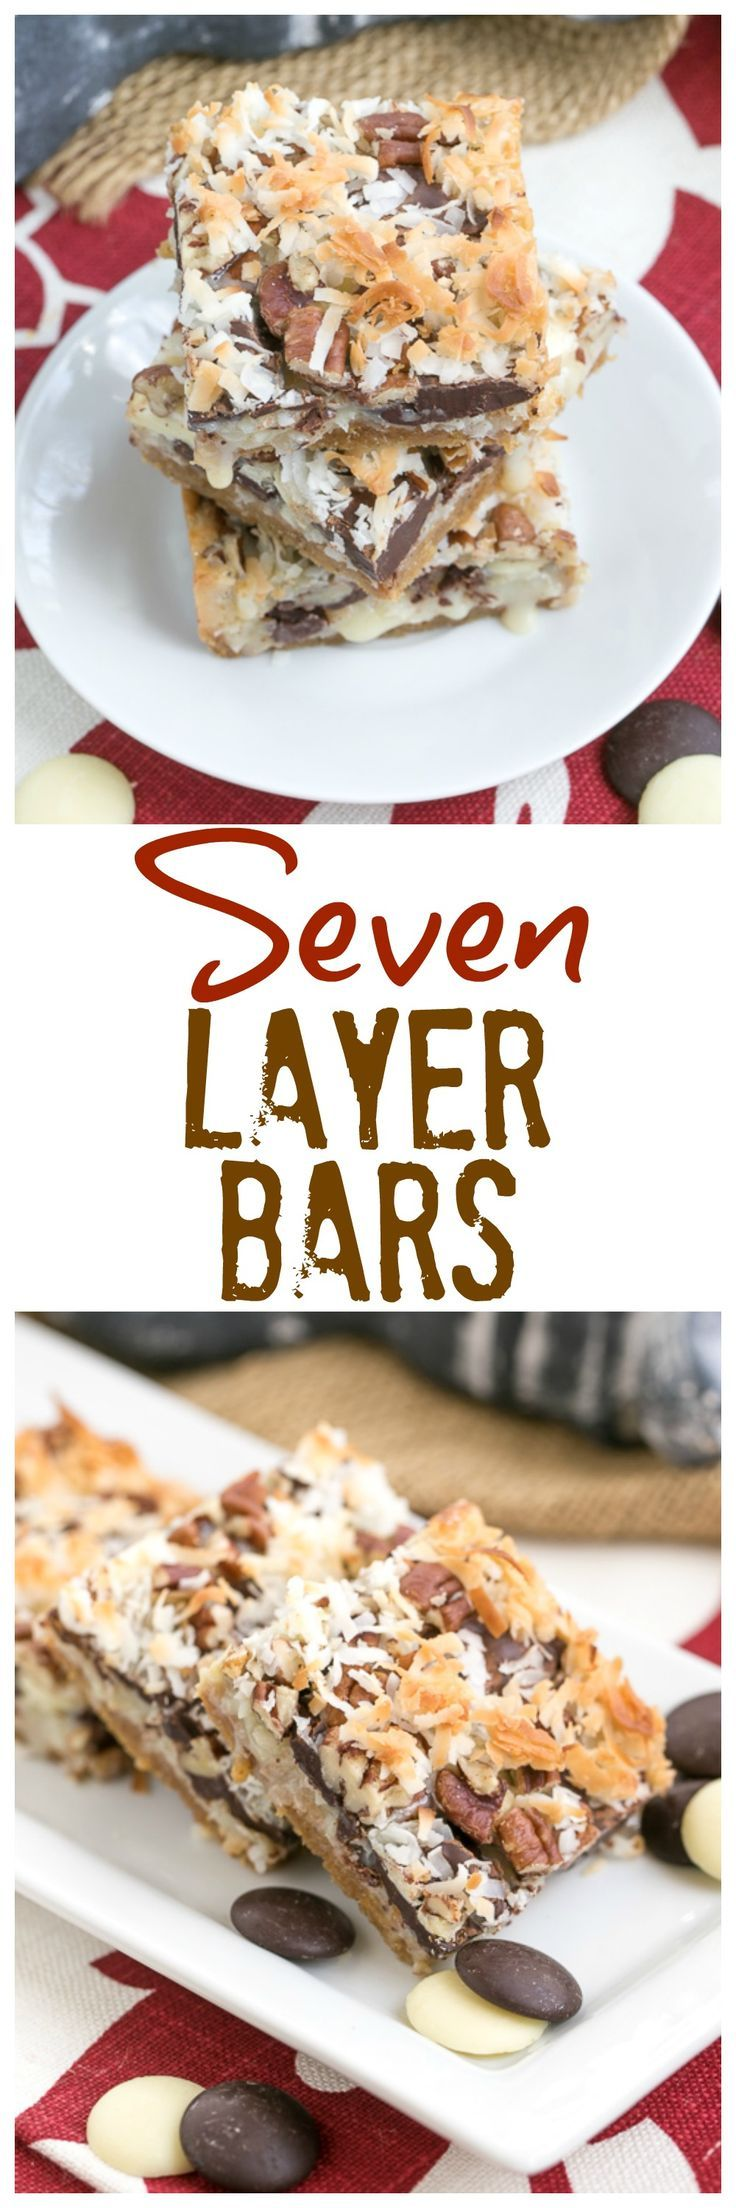 Seven Layer Bars | Graham cracker crust layered with 3 types of chocolate chips, sweetened condensed milk, coconut and pecans! @lizzydo